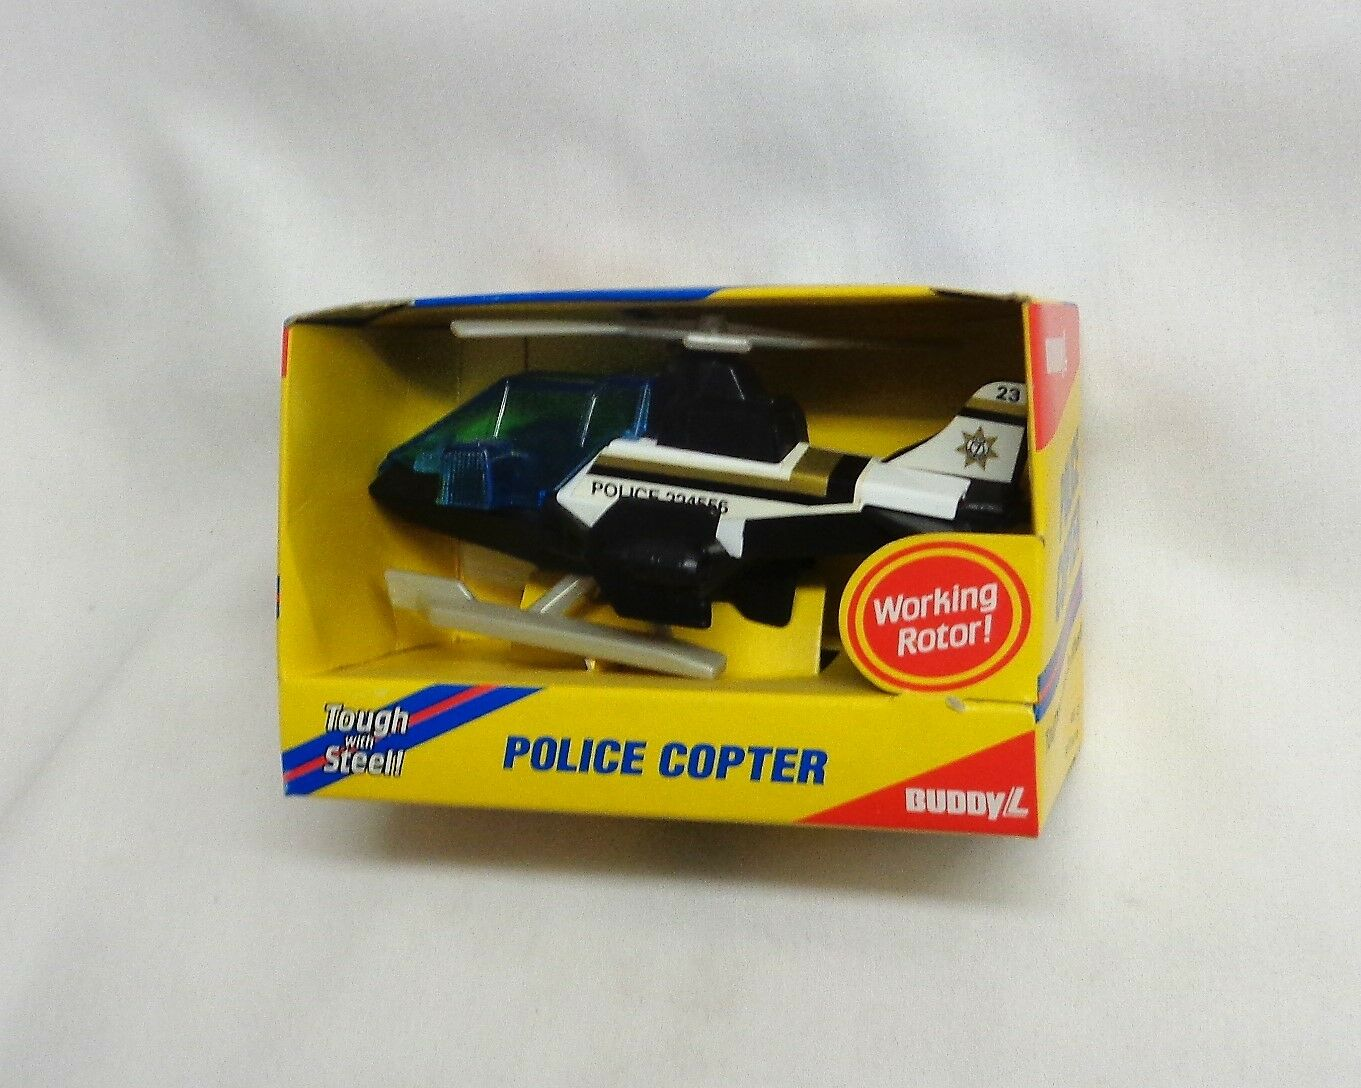 Rare NEW 1989 1989 1989 Vintage Buddy L Police Copter Helicopter Boxed Mint FREESHIP 70a931